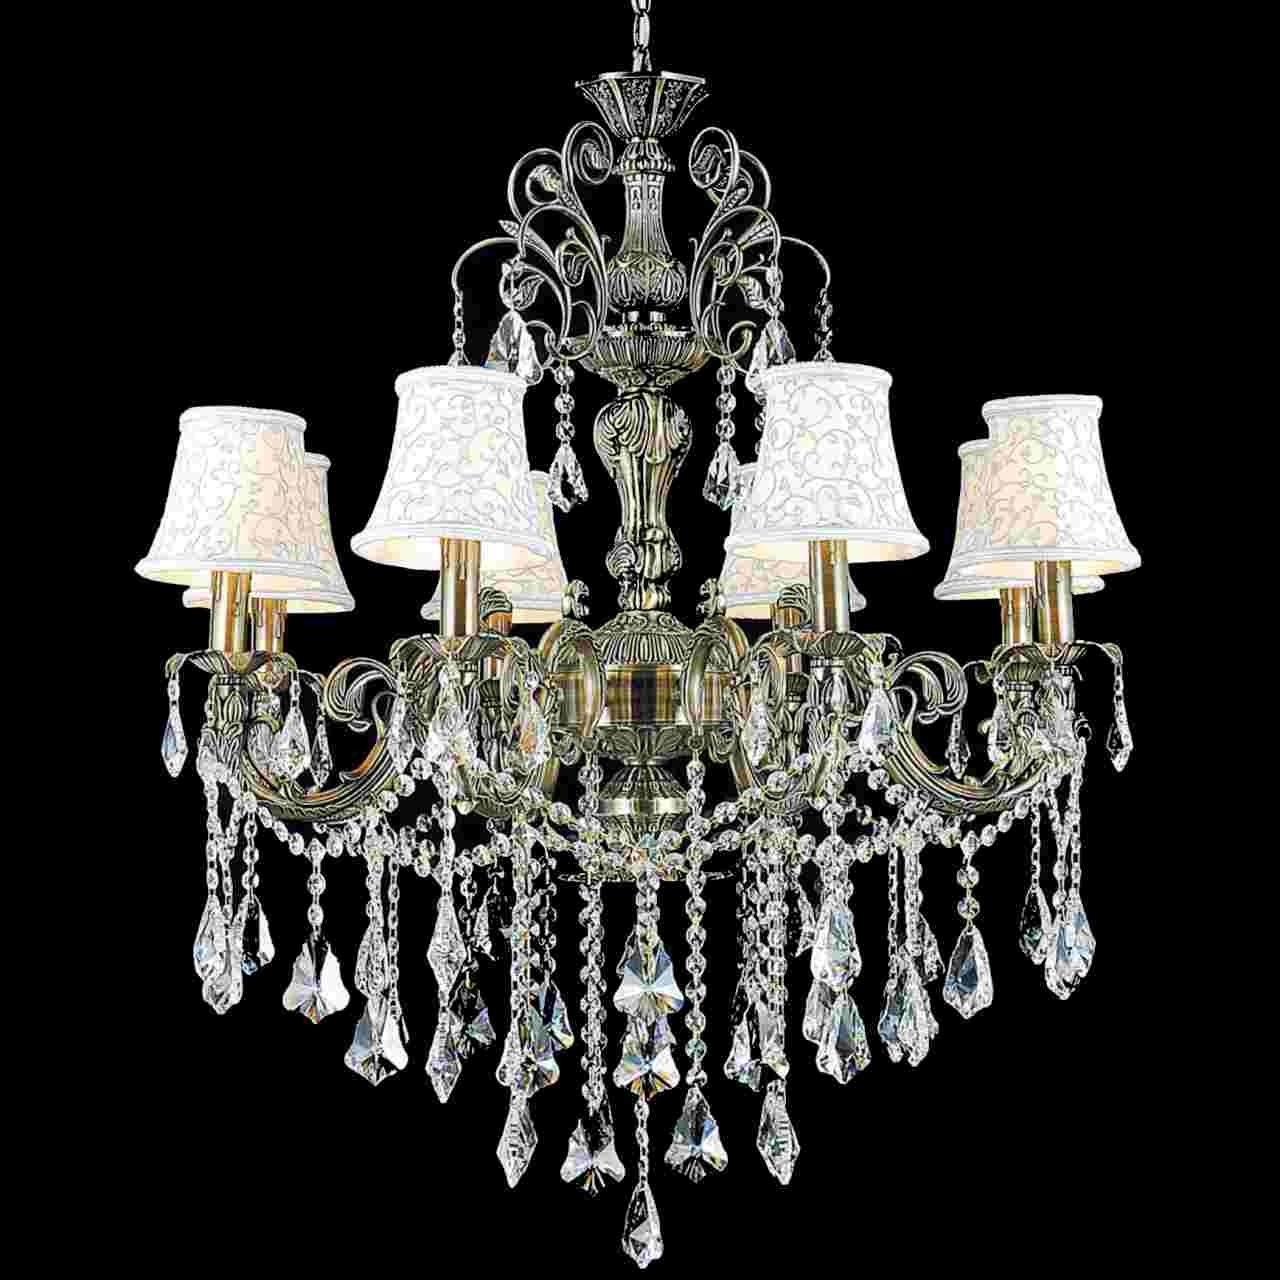 Famous Chandelier With Shades And Crystals Regarding Brizzo Lighting Stores (View 16 of 20)